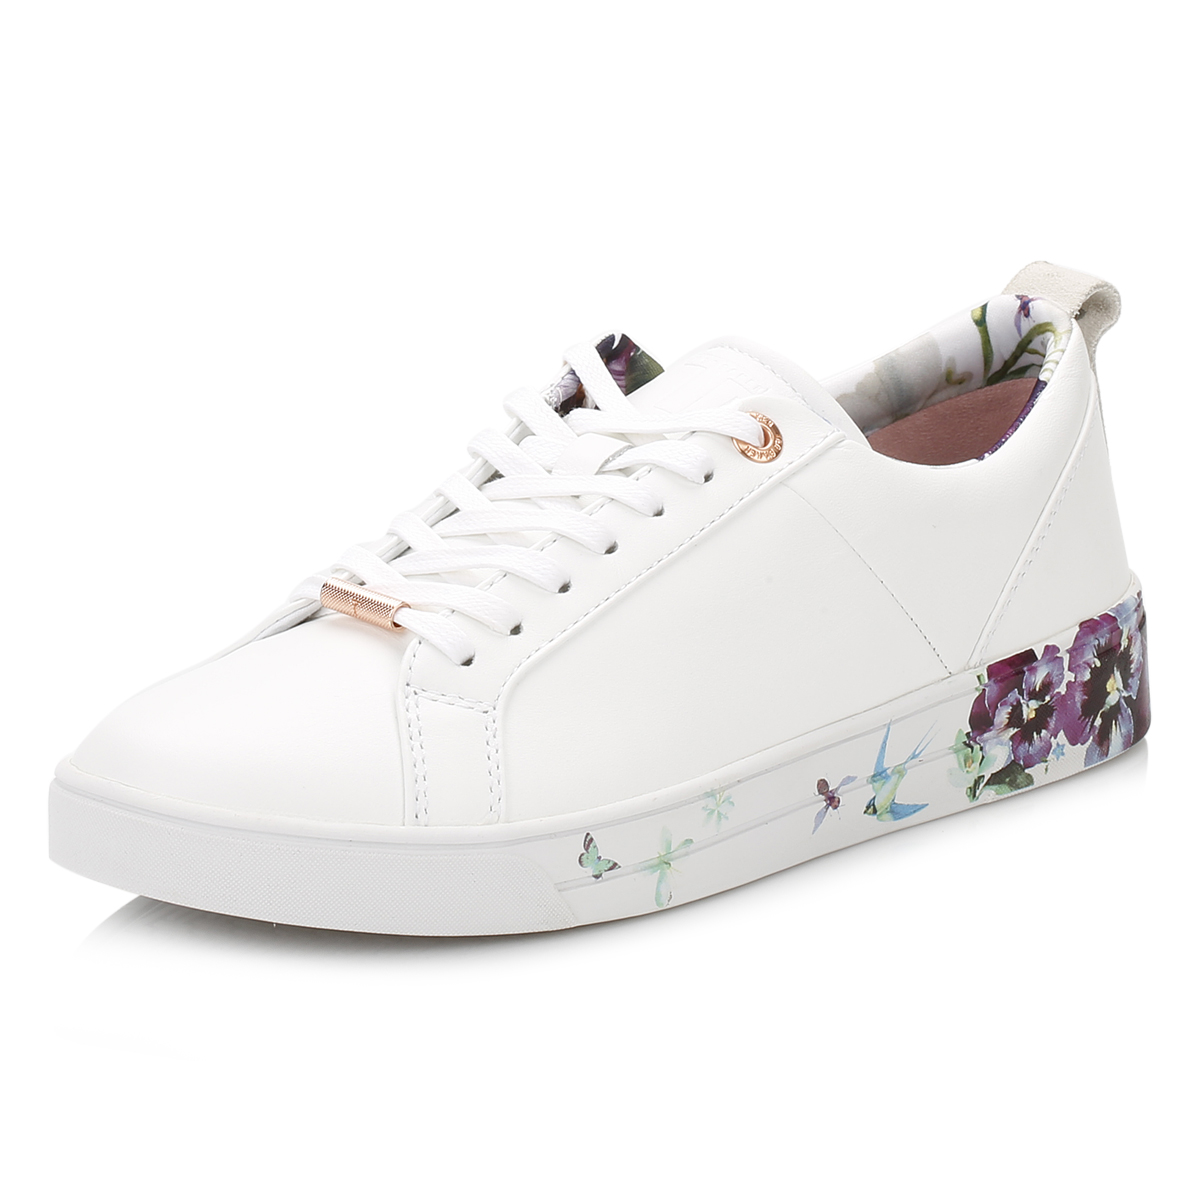 c283375a5 Ted Baker Womens White Barrica Trainers, Floral Sport Casual Leather Shoes